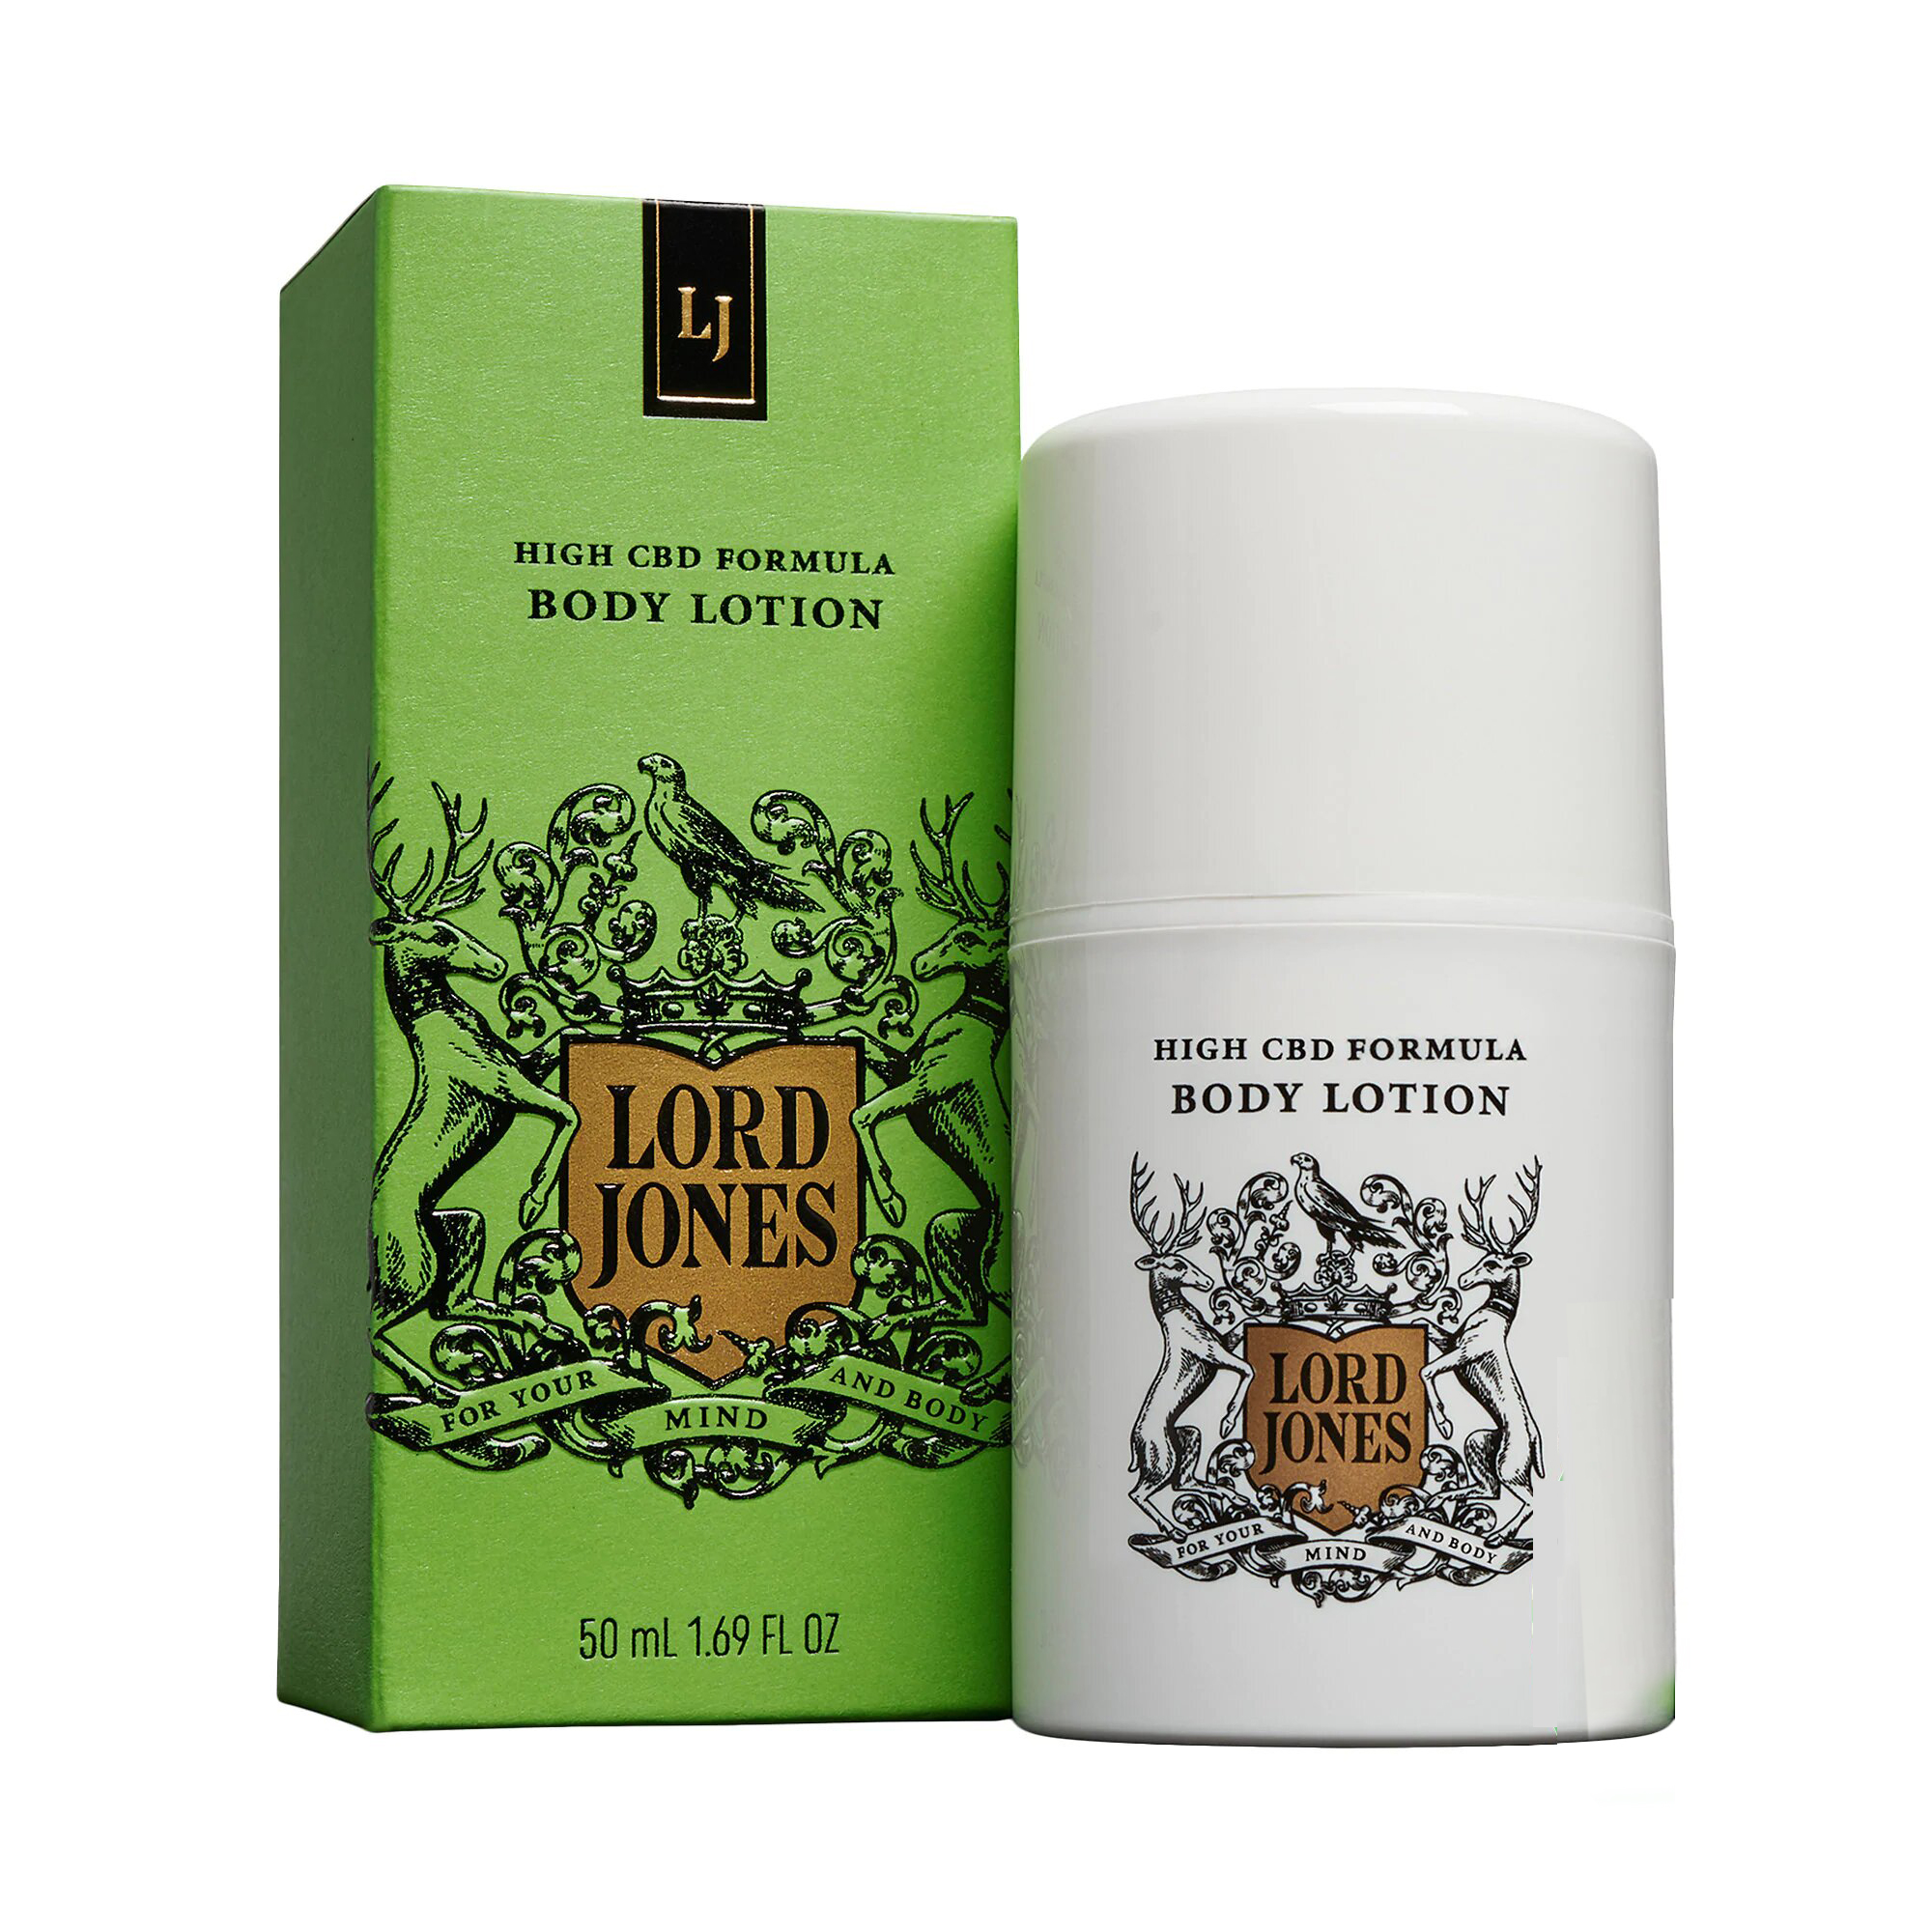 High CBD Formula Body Lotion - Lord Jones